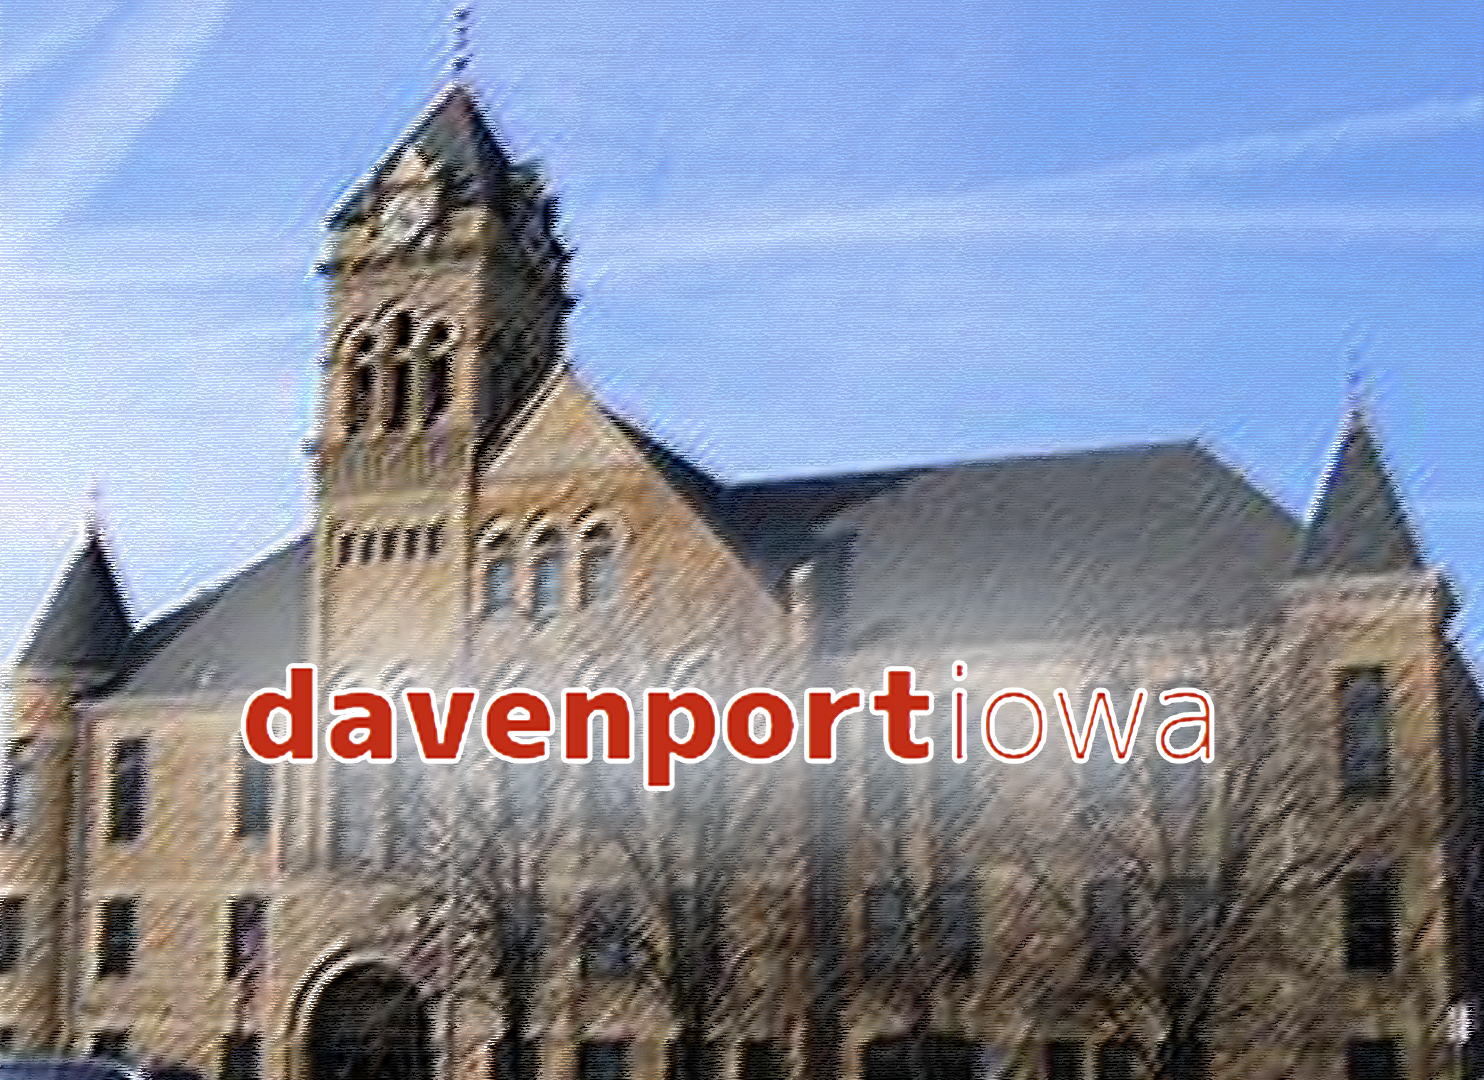 Davenport City Government_1435204475580.jpg